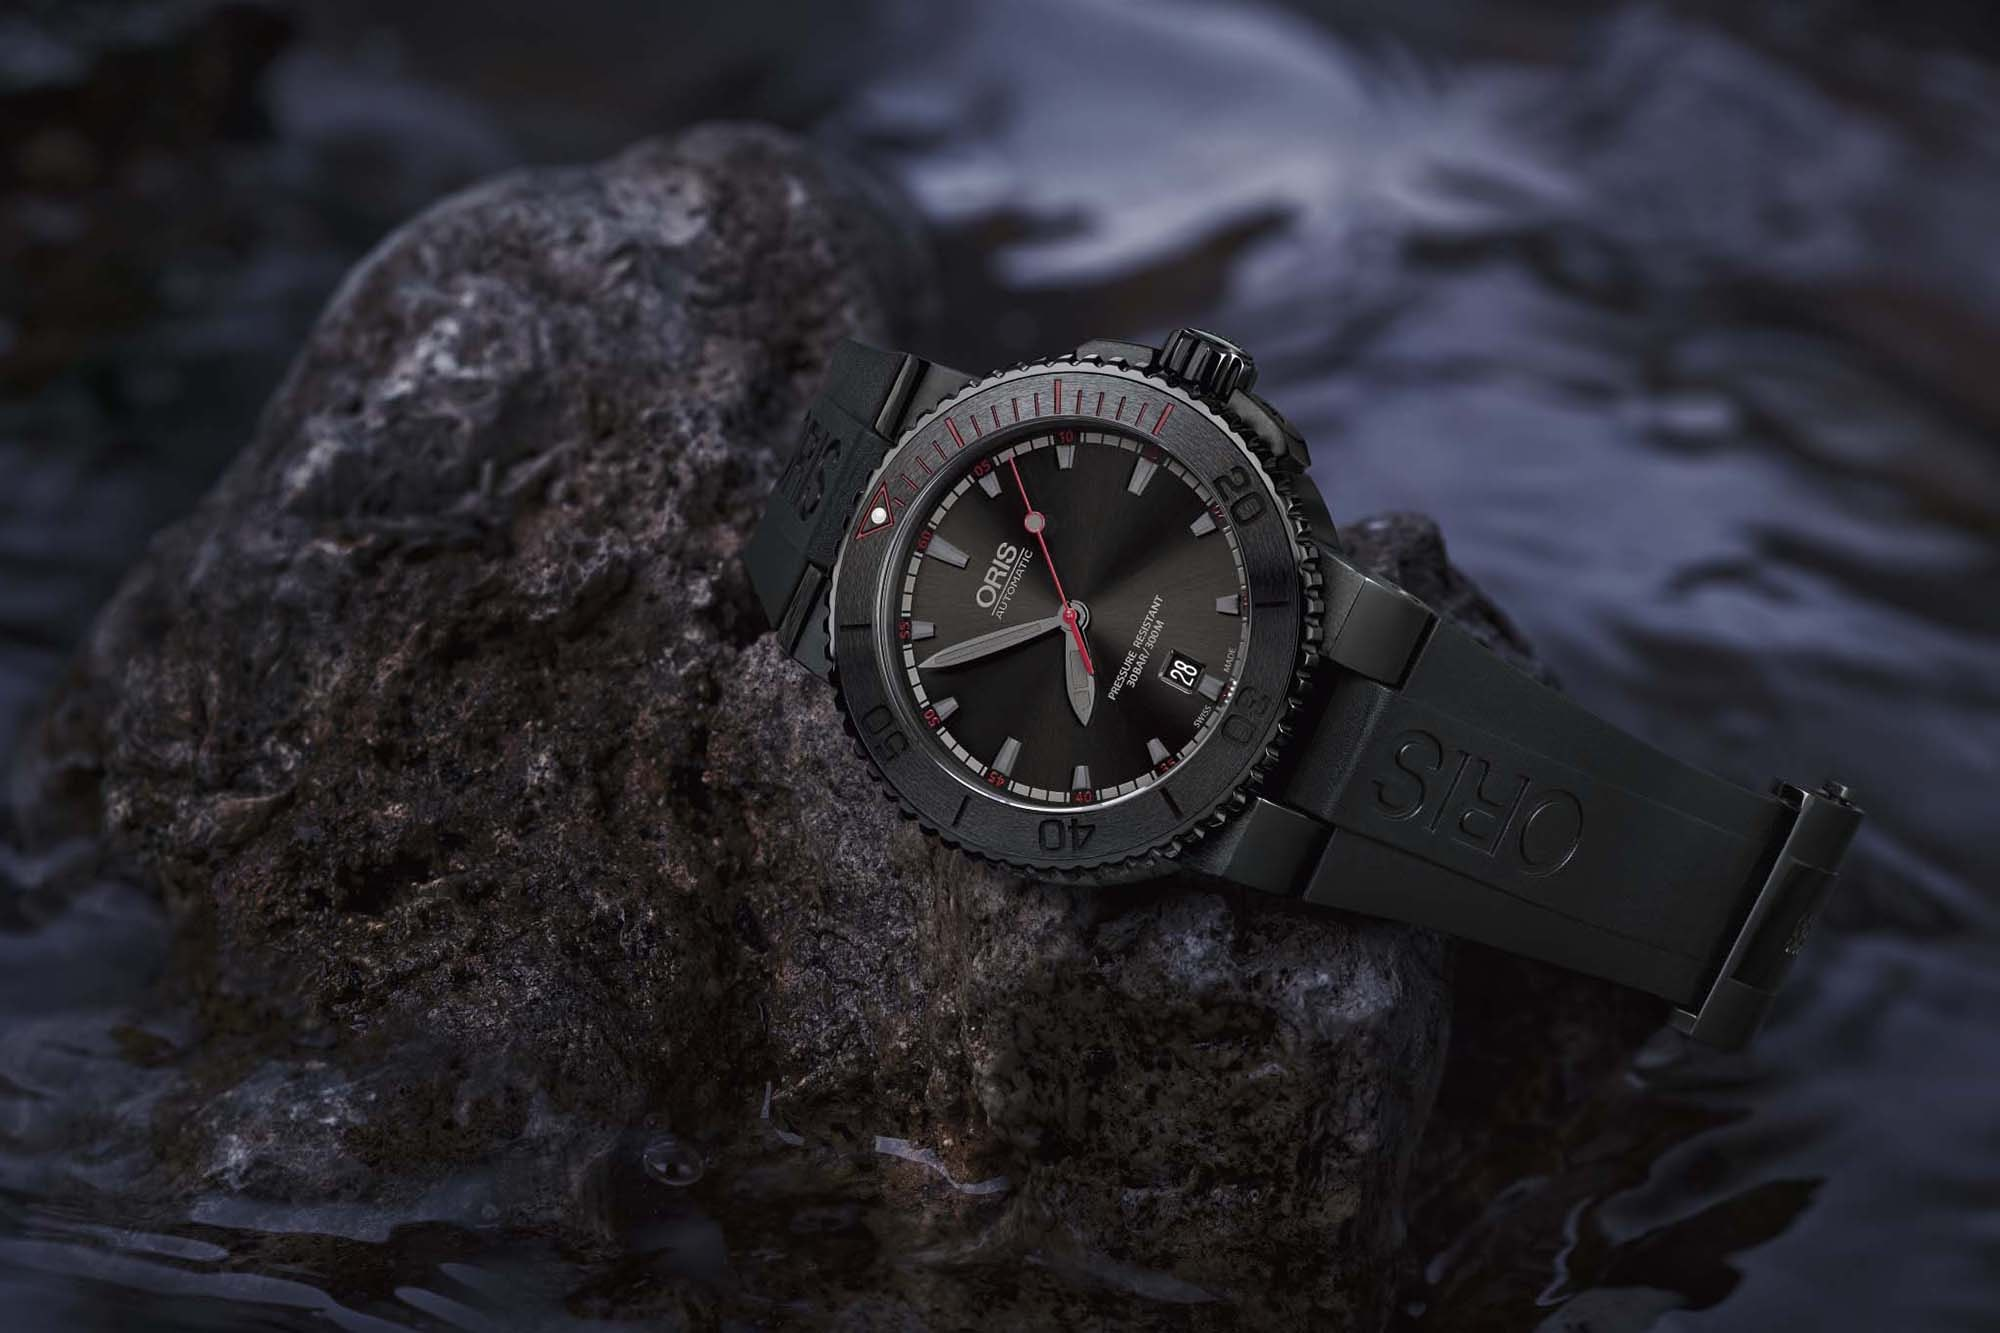 Oris El Hierro Limited Edition Introducing: Three New Divers From Oris – One Heritage Update, And Two Limited Editions Supporting Good Causes Introducing: Three New Divers From Oris – One Heritage Update, And Two Limited Editions Supporting Good Causes f